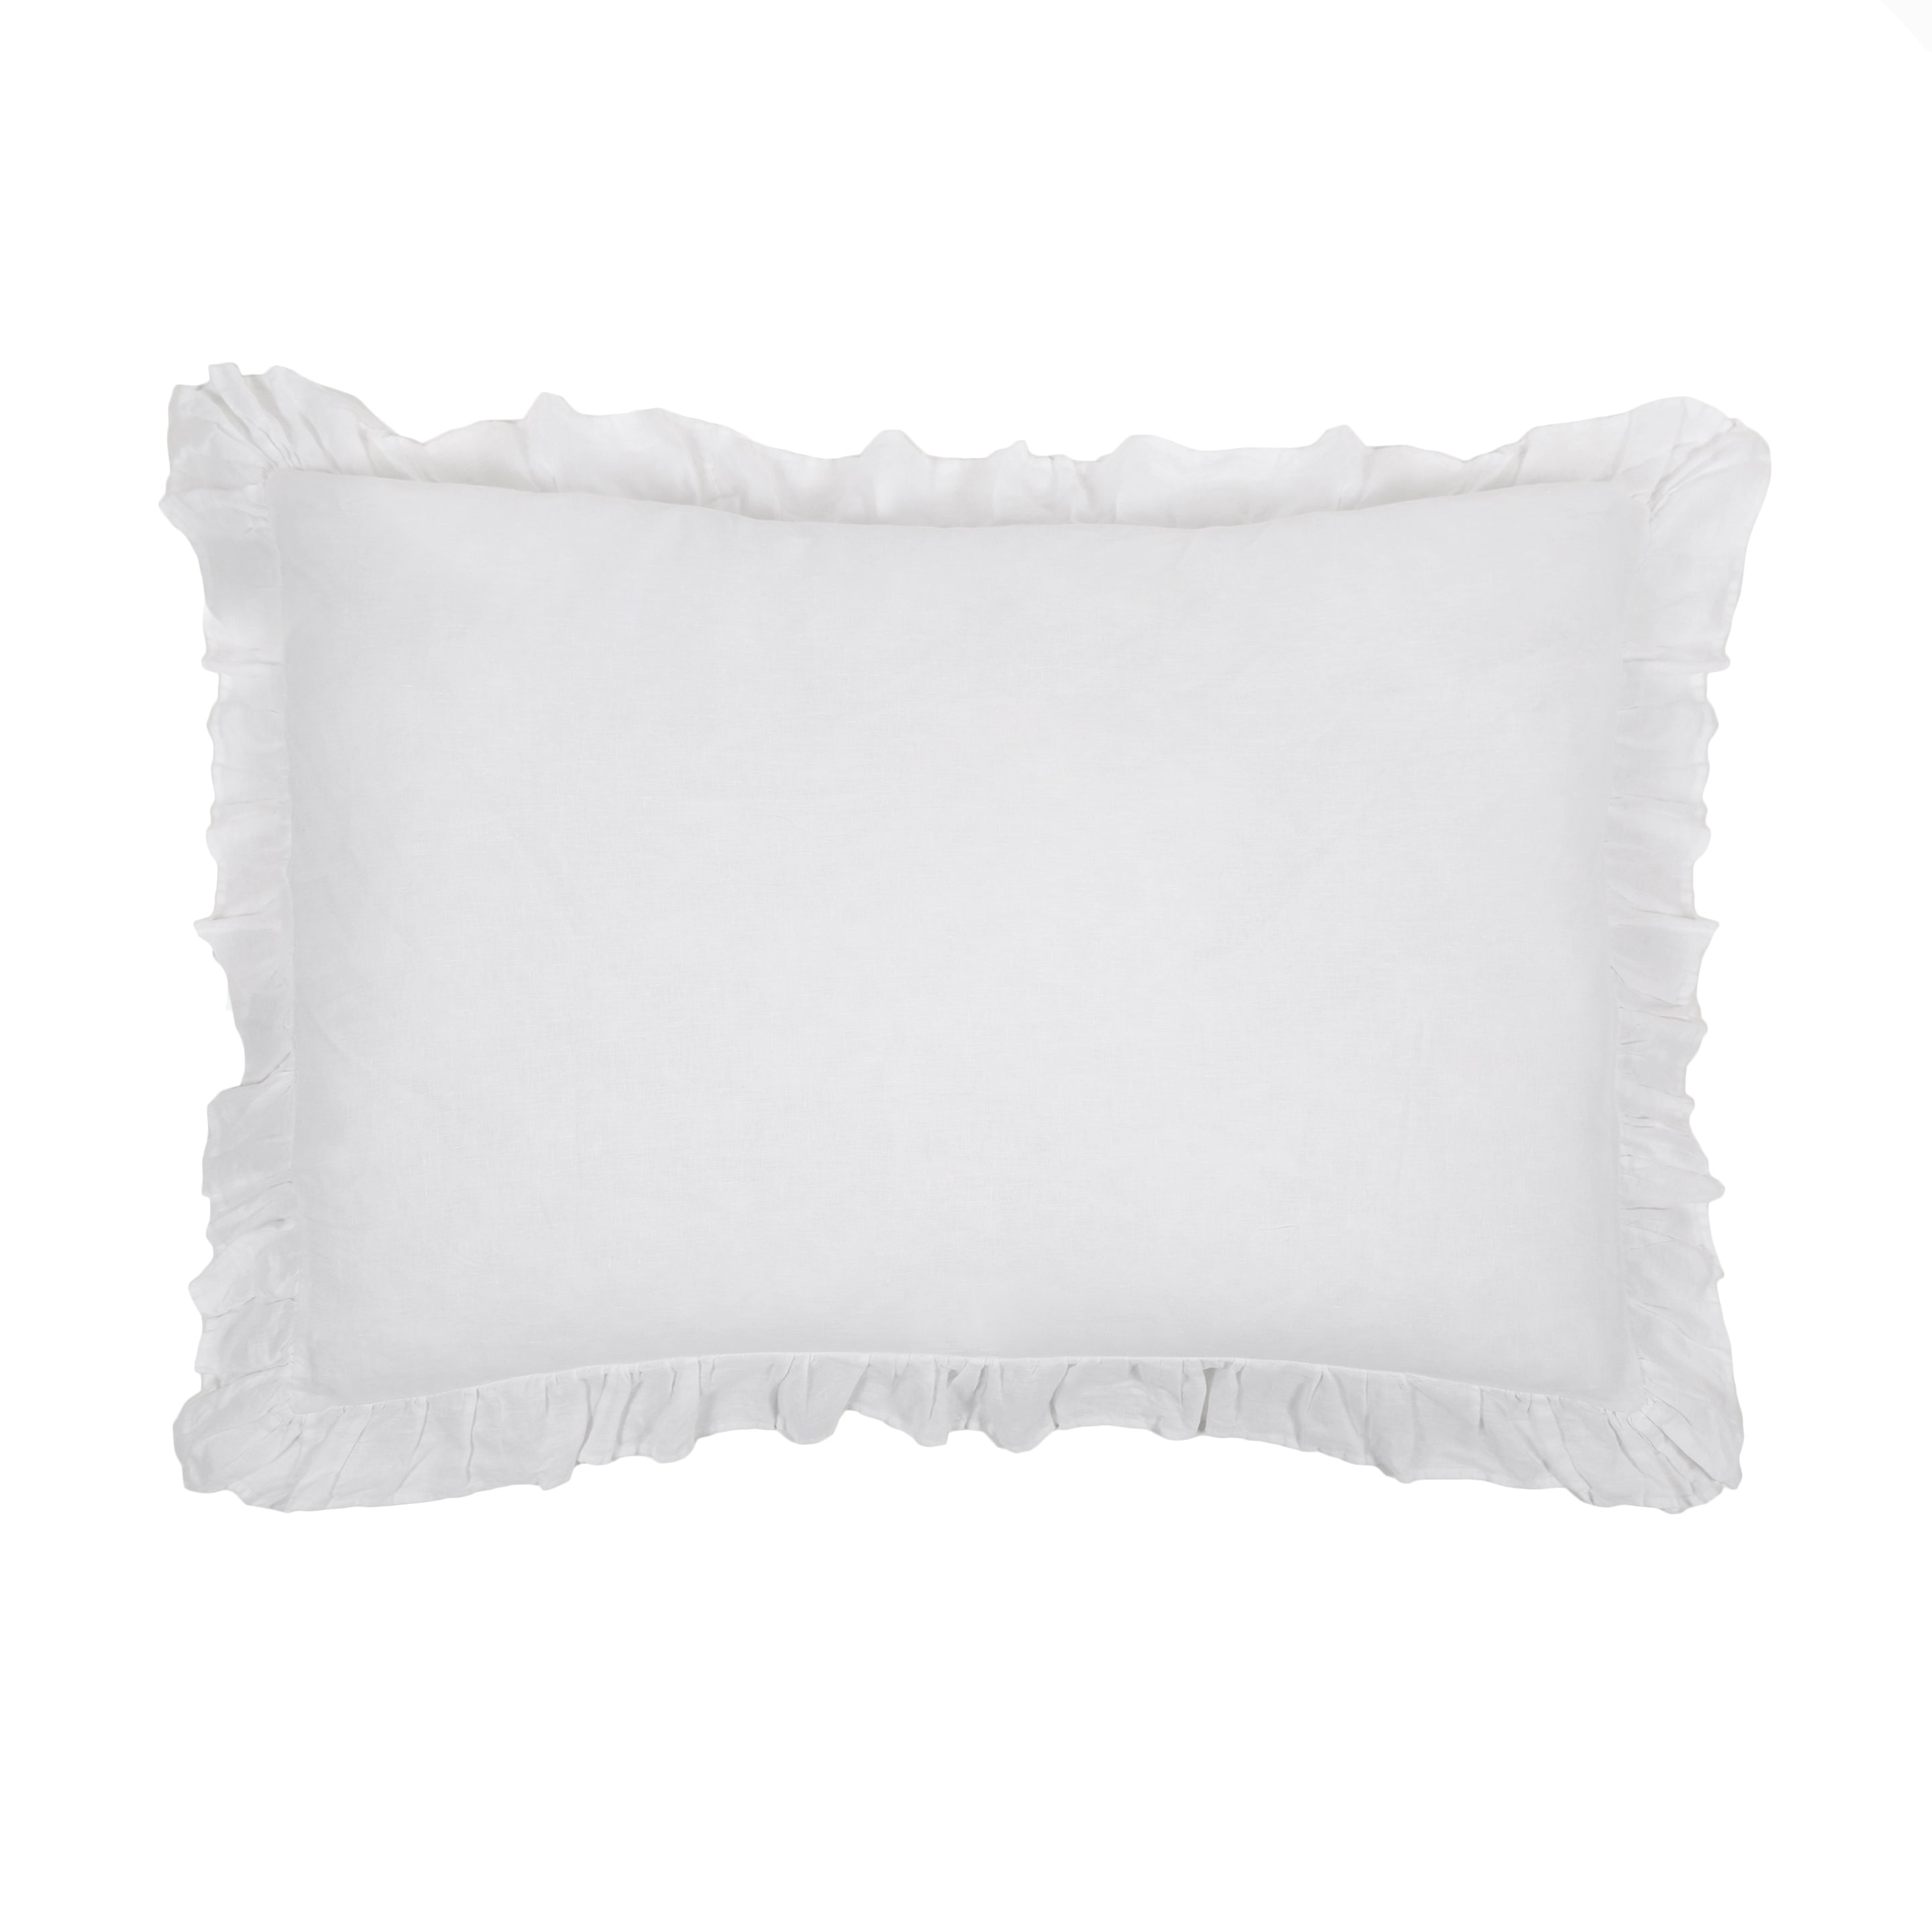 Charlie Big Pillow 28 X 36 With Insert White